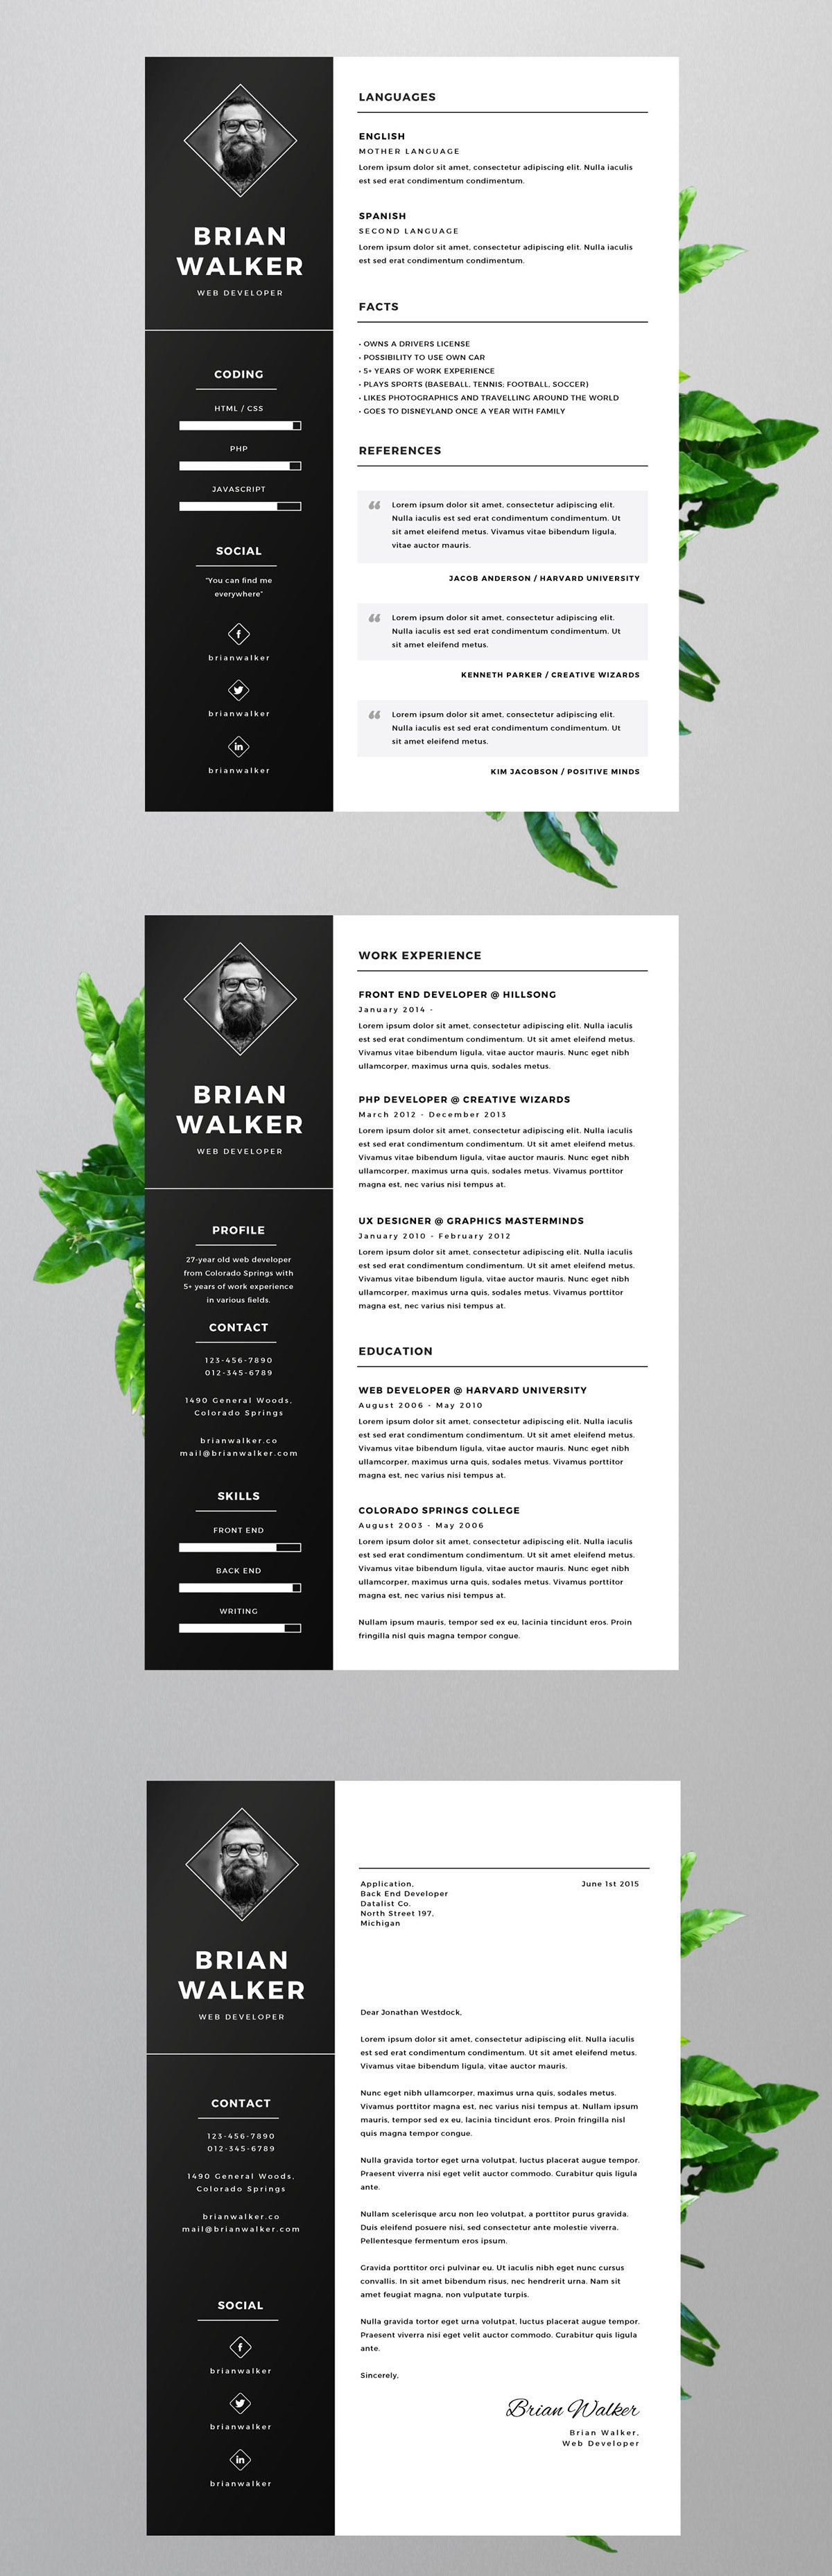 Free resume template for microsoft word adobe photoshop and adobe free resume template for microsoft word adobe photoshop and adobe illustrator free for personal yelopaper Gallery